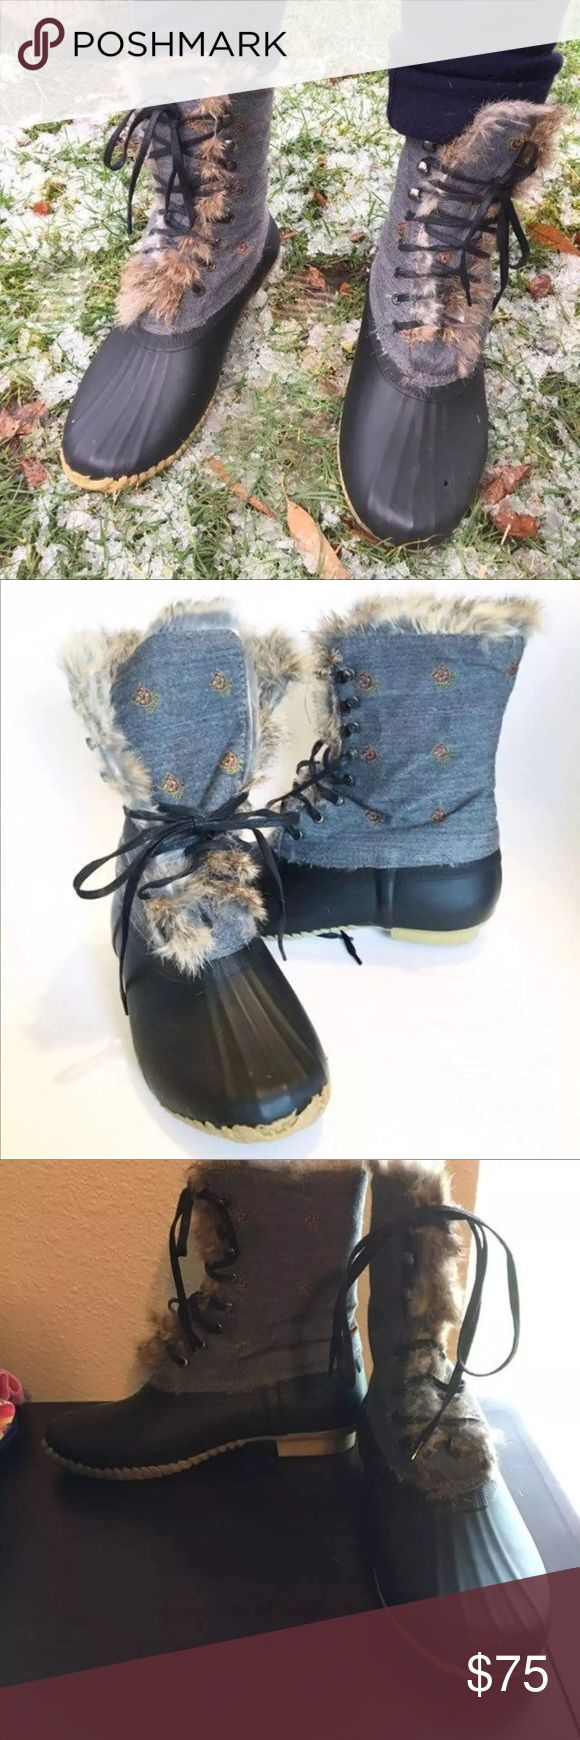 🍁FLASH SALE🍁SPERRY DUCK TOPSIDER BOOTS J CREW🍁 Hard to find Sperry for J.Crew Topsider boots rabbit fur lined  like sorel size 8 run true to size i usually take an 8 1/2 and they are a tad too small on me.I have a great free people hoodie sweater that matches these perfect and another listing. Sperry Shoes Ankle Boots & Booties